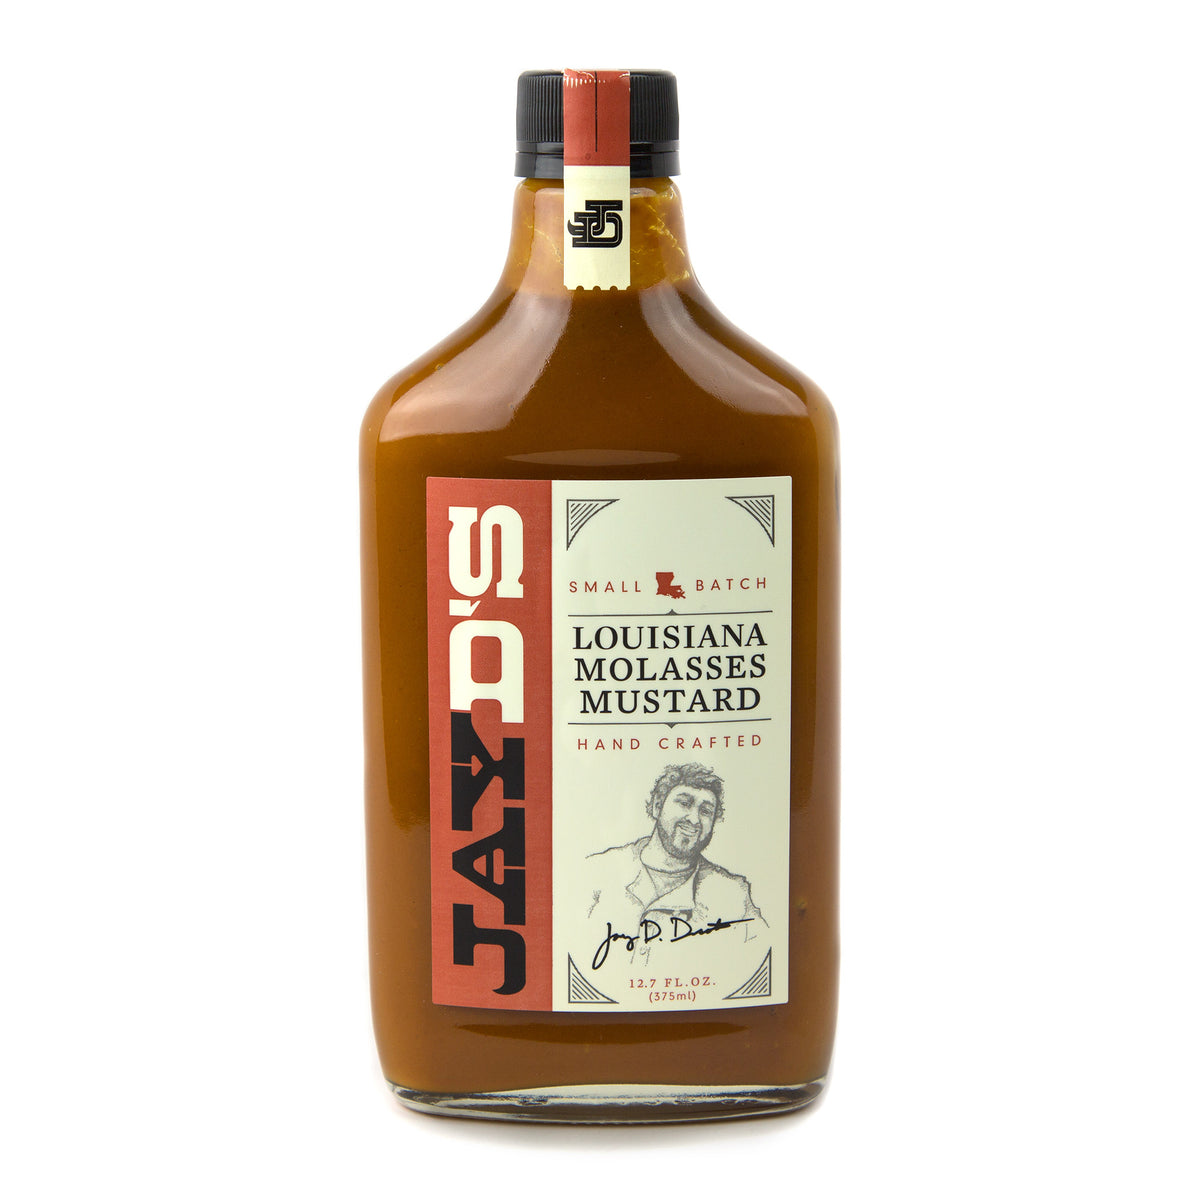 Jay D's Louisiana Molasses Mustard - Louisiana Products - Red Stick Spice Company